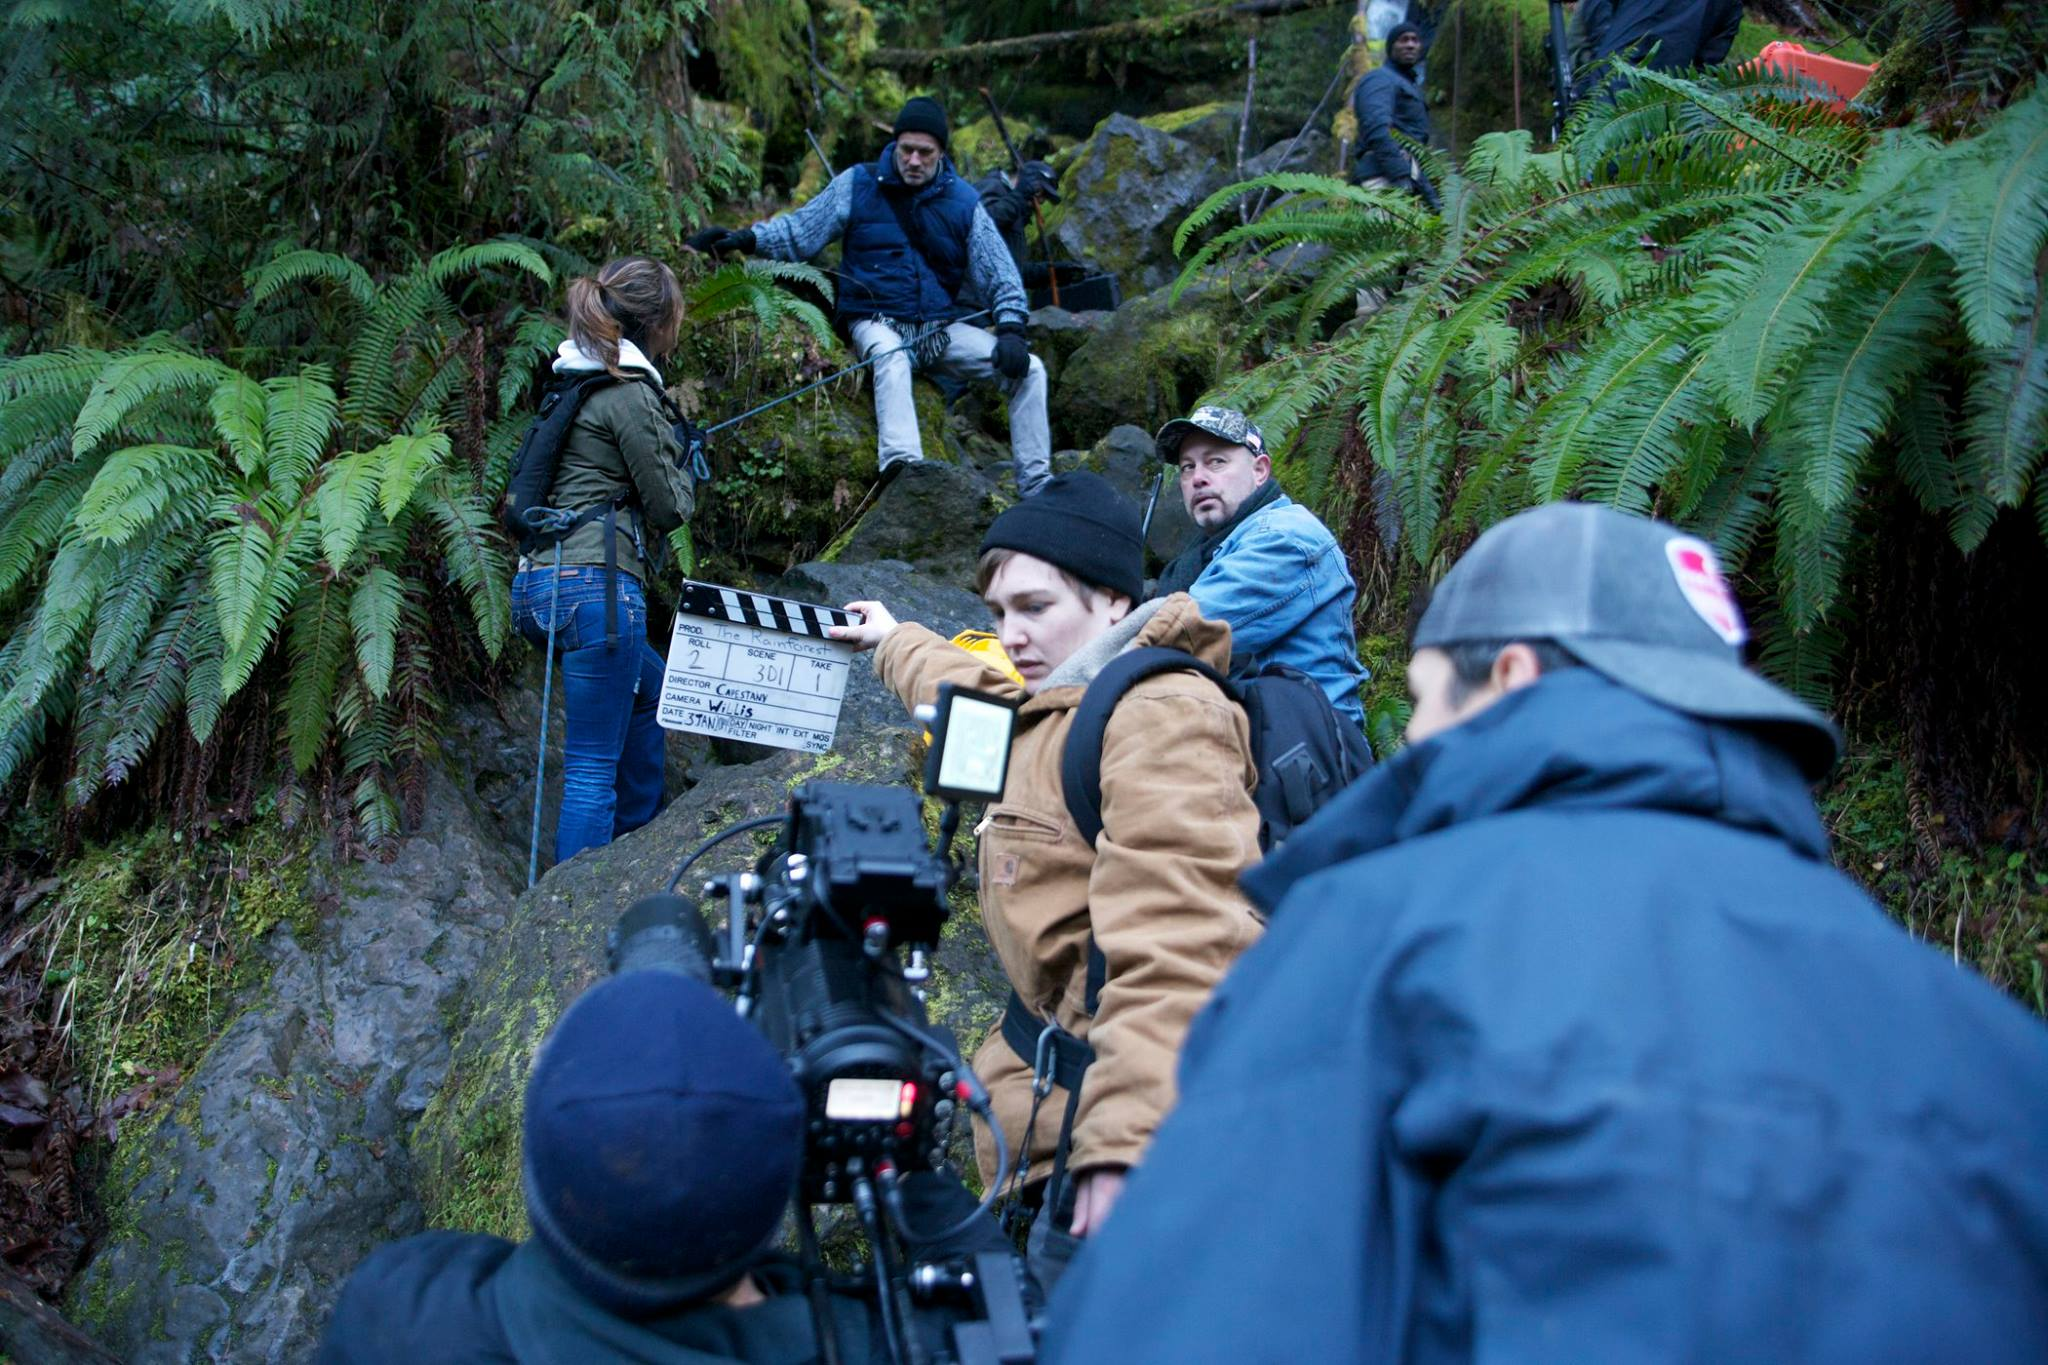 Television show pilot to be filmed on Washington reservations